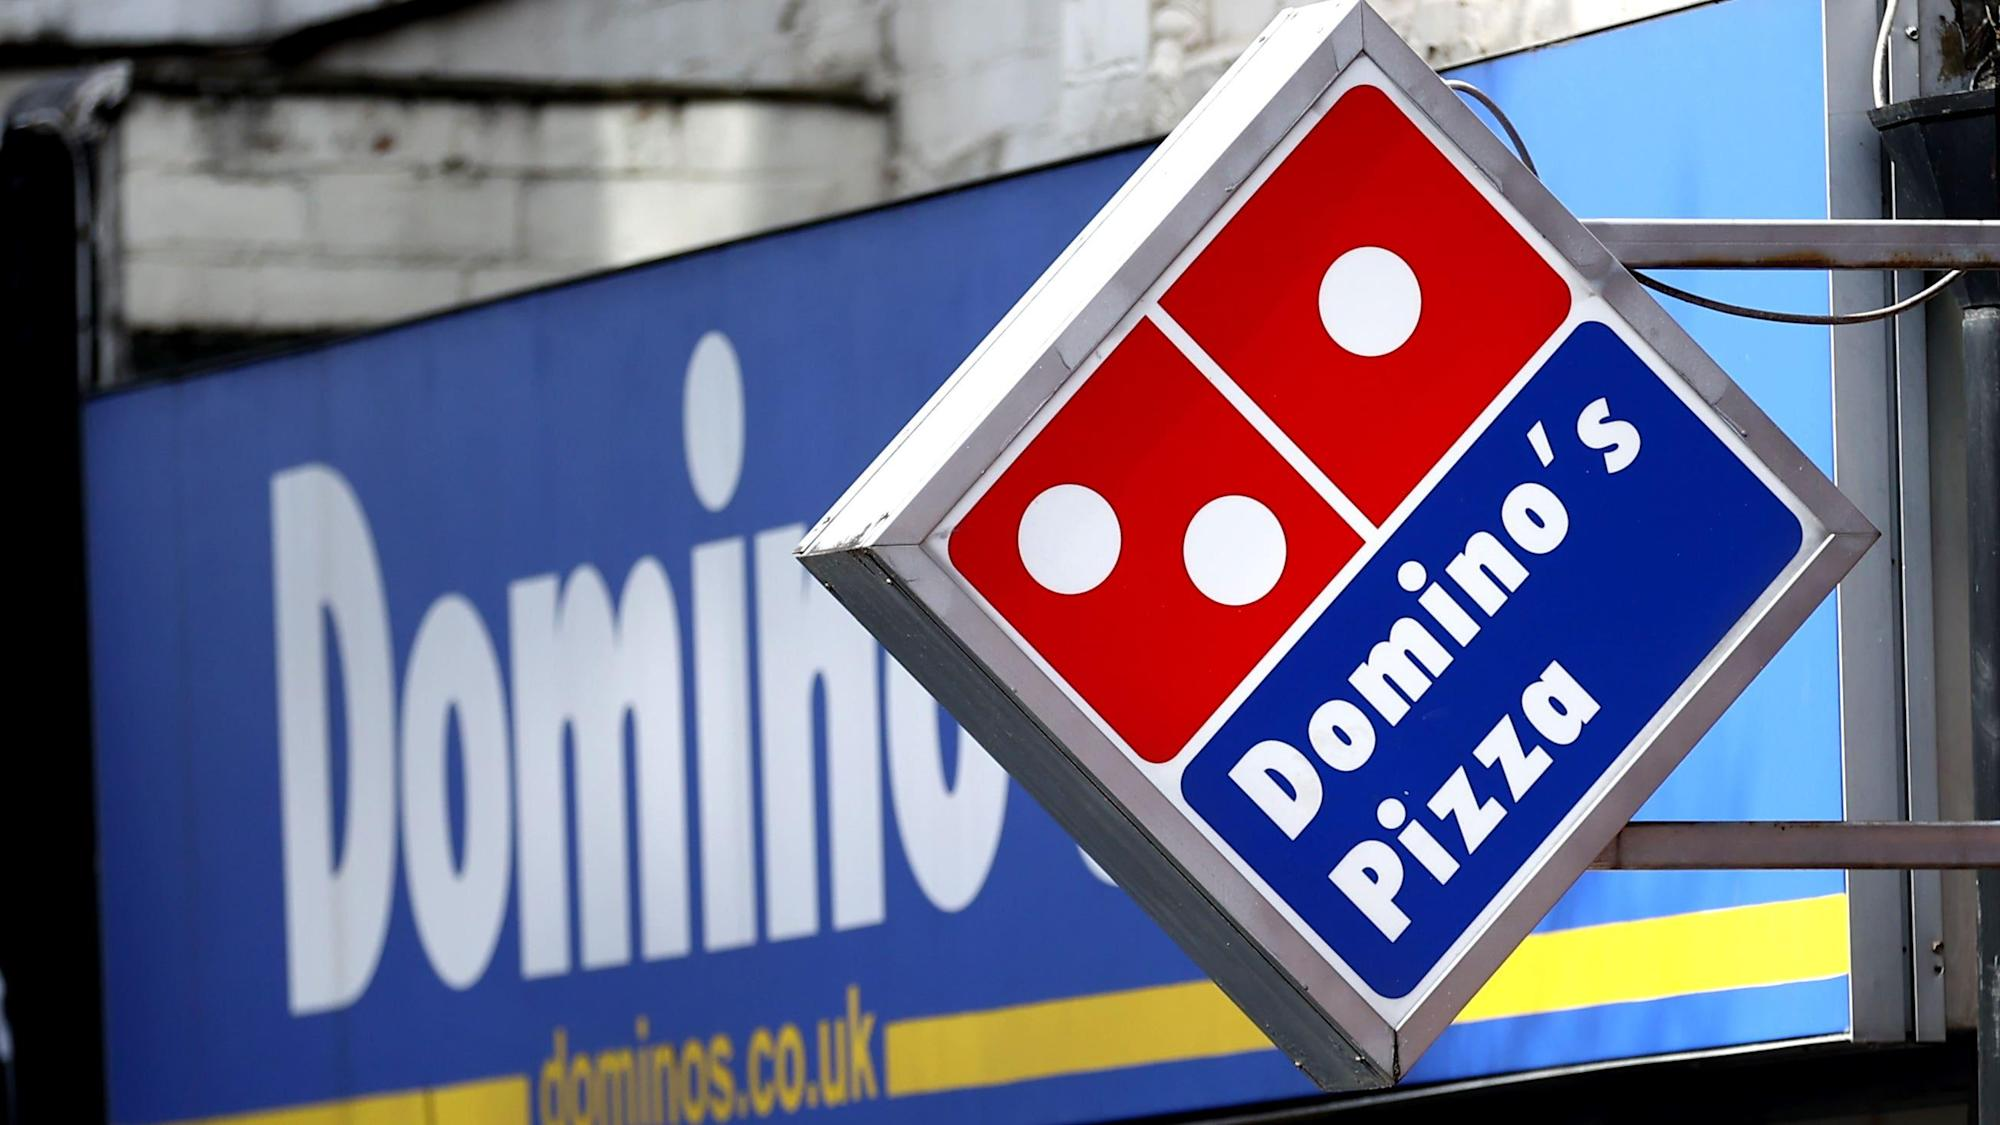 Domino's dishes up sales surge as lockdown boosts delivery ...